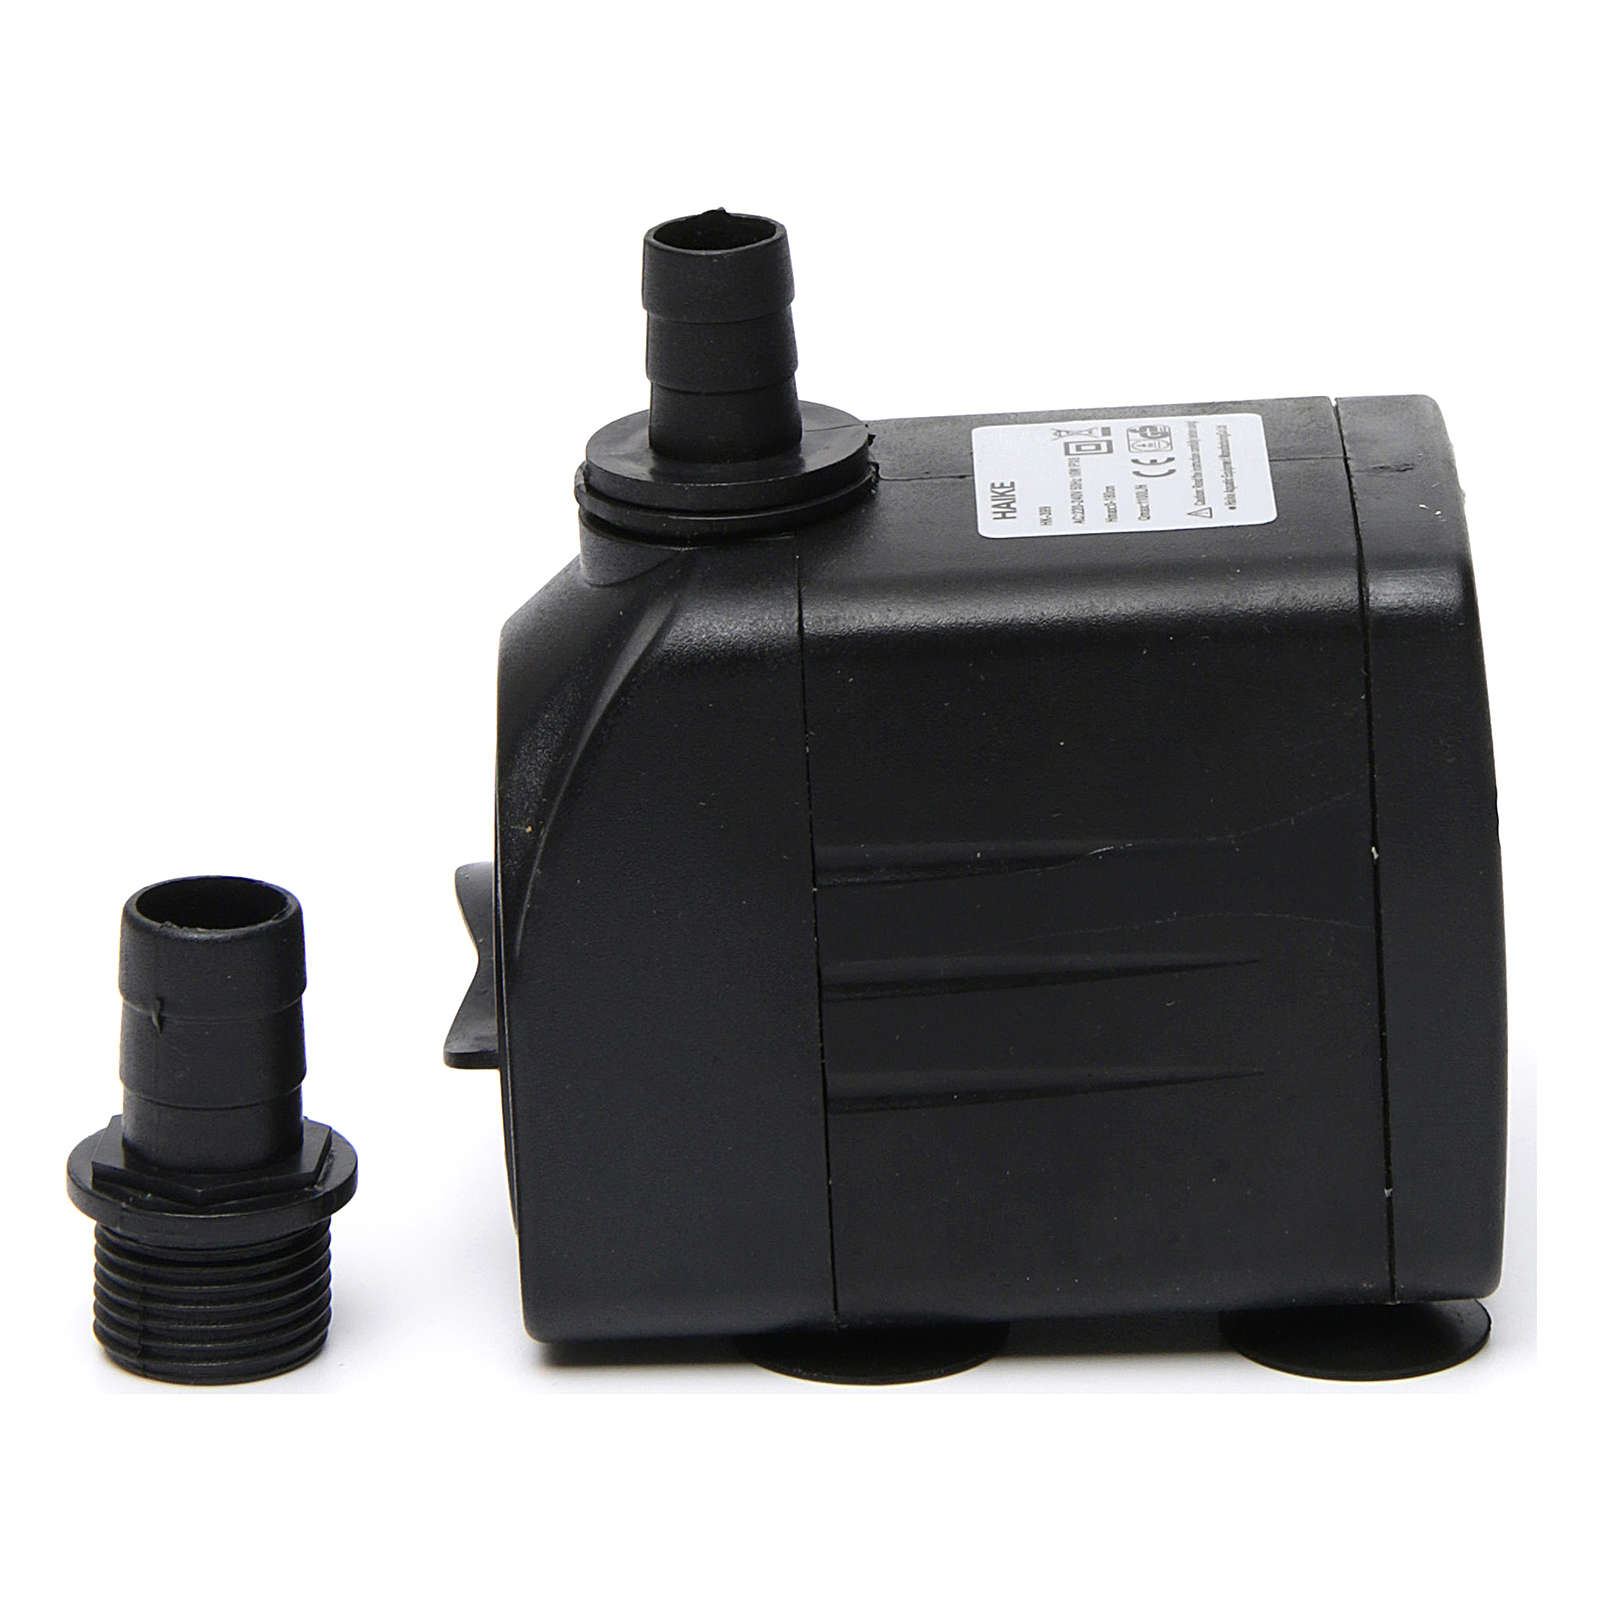 Nativity accessory, pump for water fountain 16 w 4